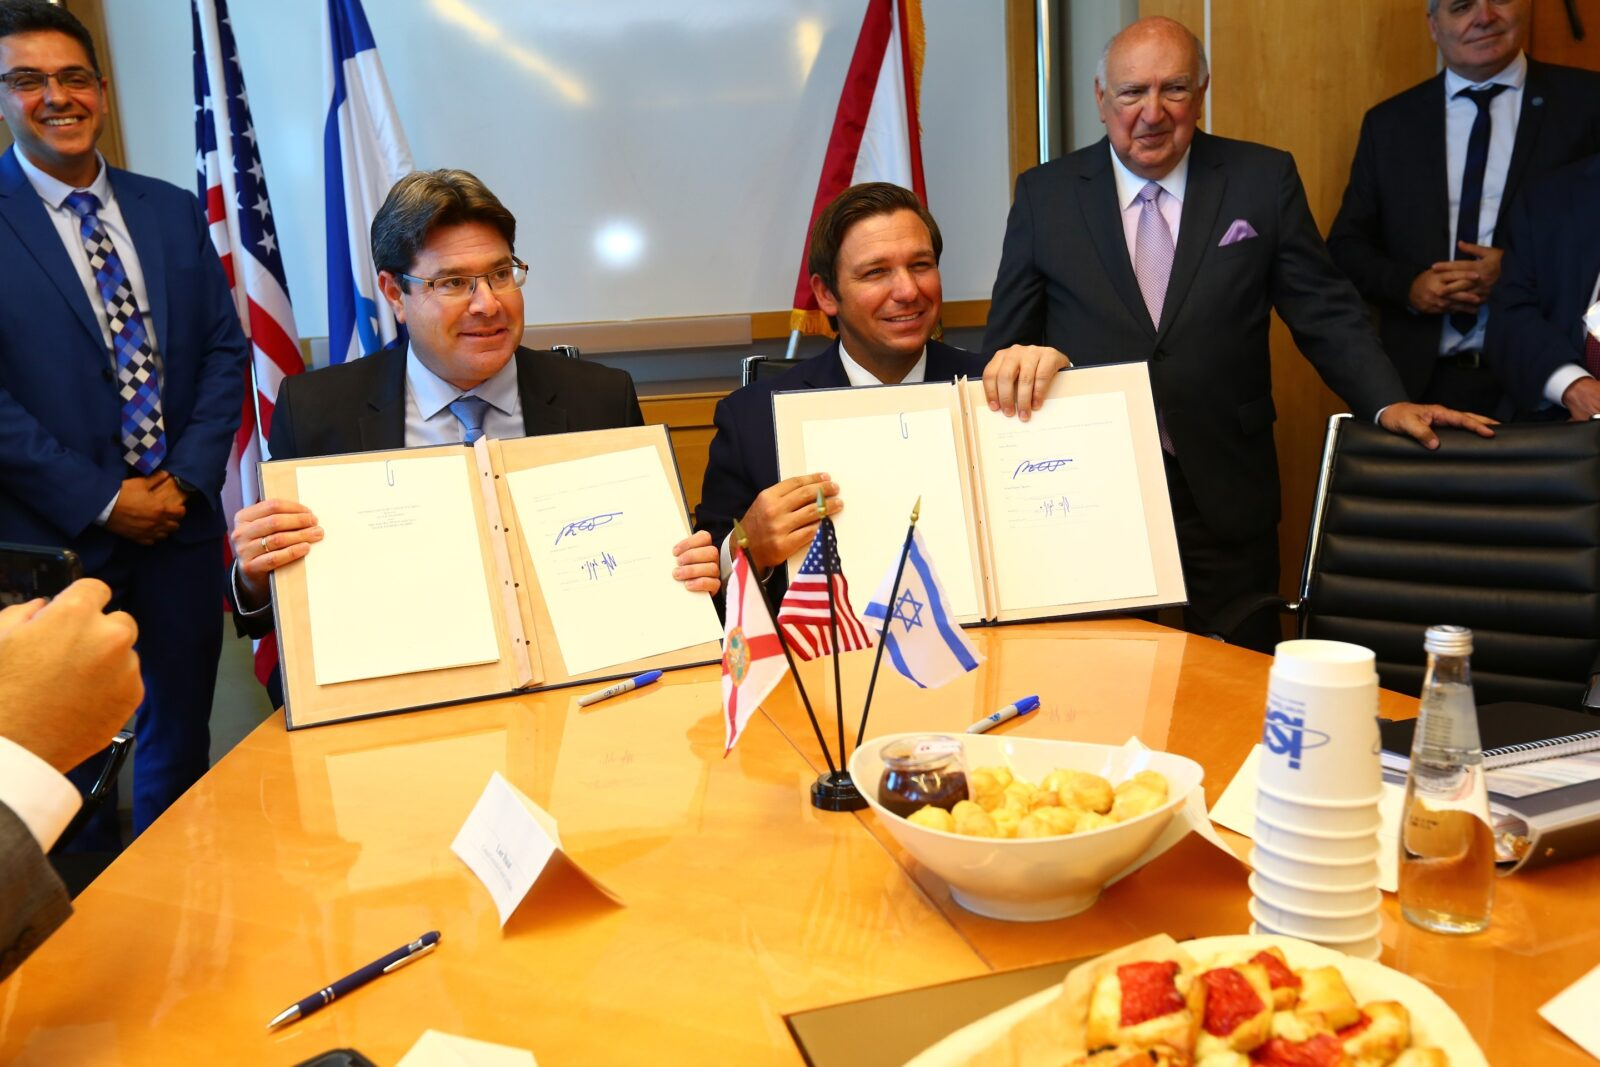 Governor Ron DeSantis Joins Space Florida and Israel Space Agency for Historic Memorandum of Understanding Signing